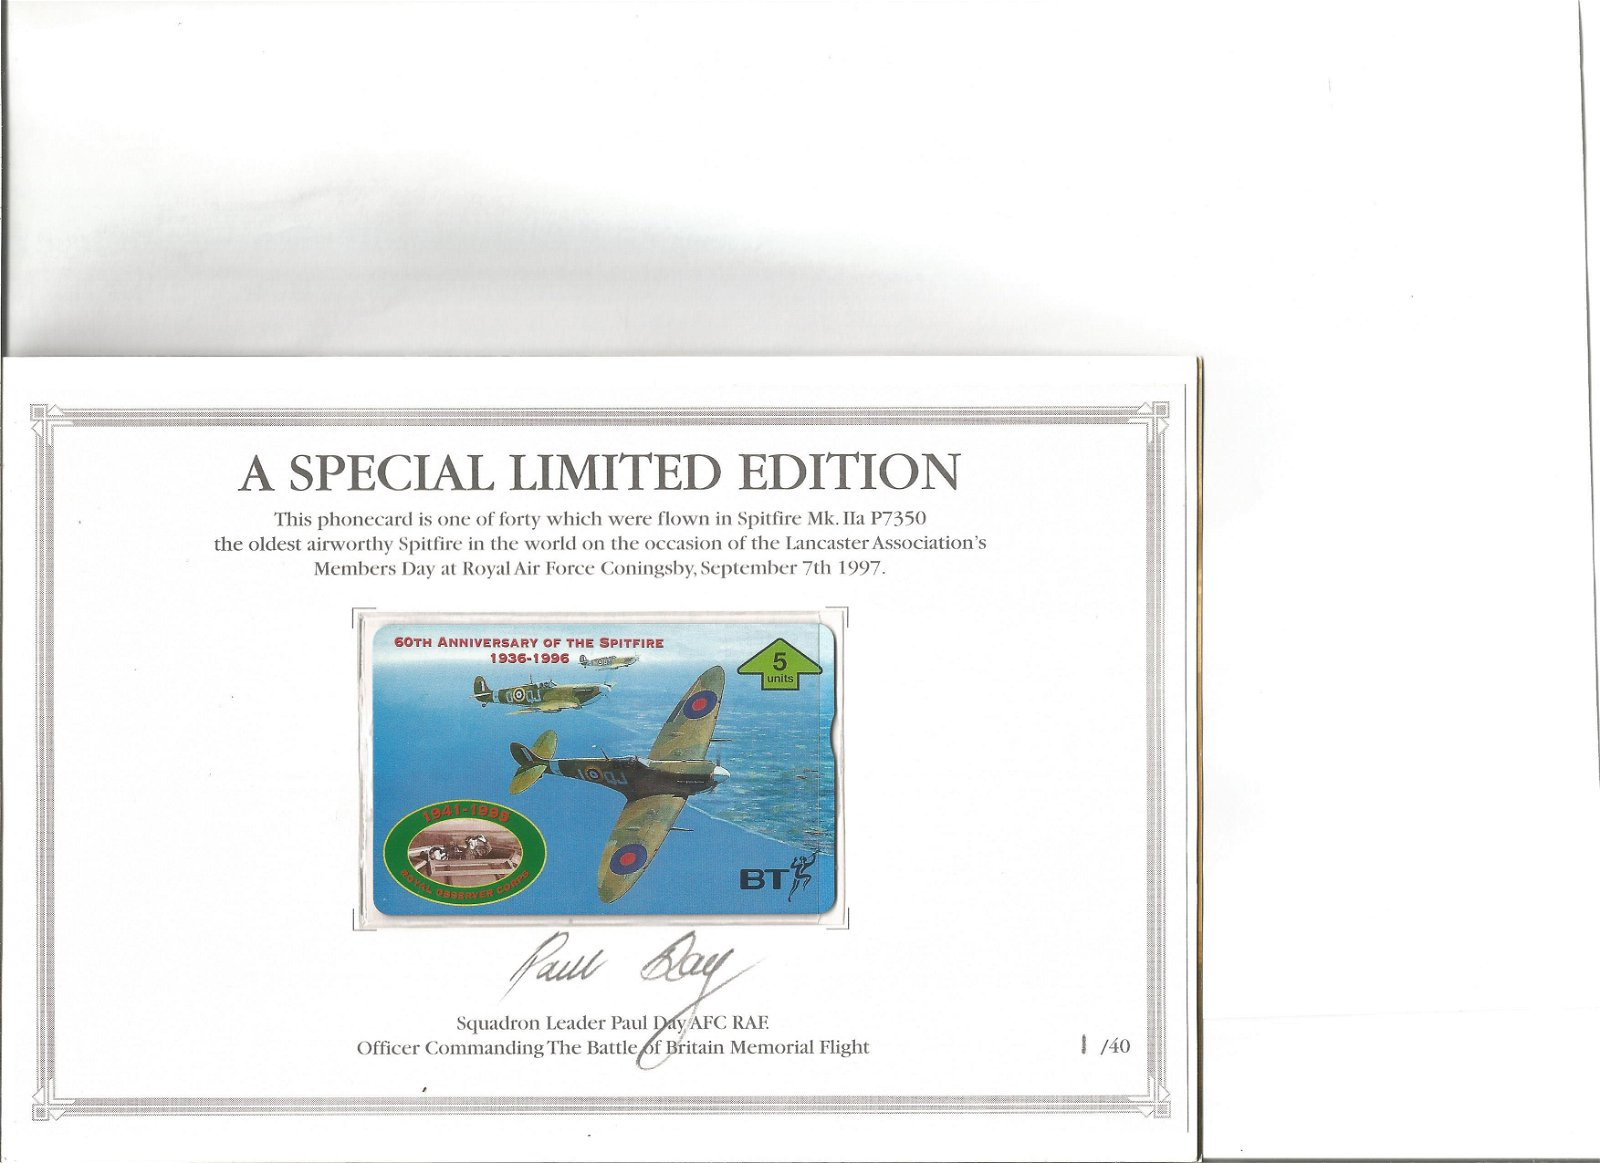 60th anniversary of the spitfire phonecard in